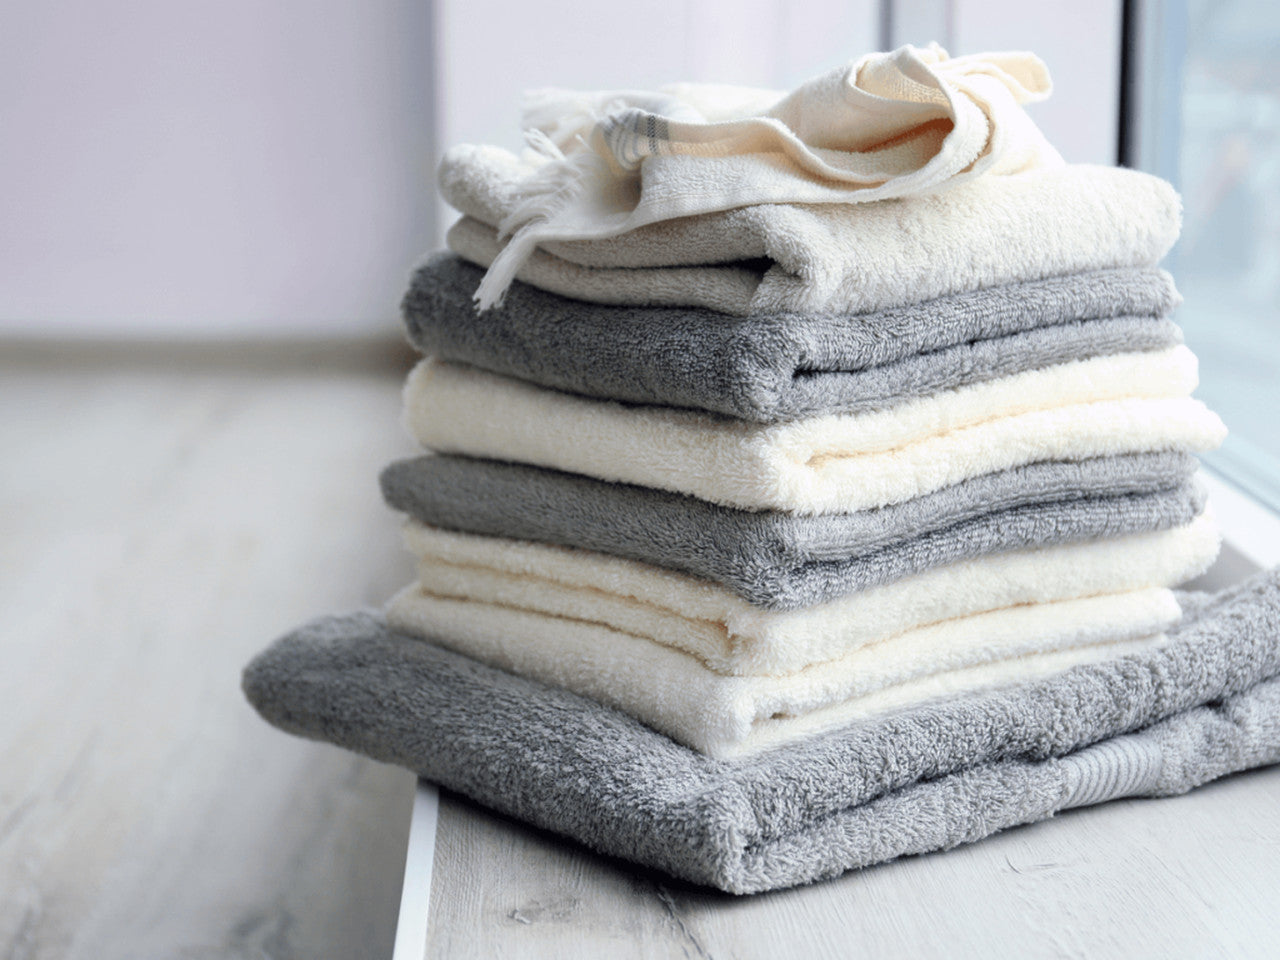 towel types, grey and white towels on the counter.